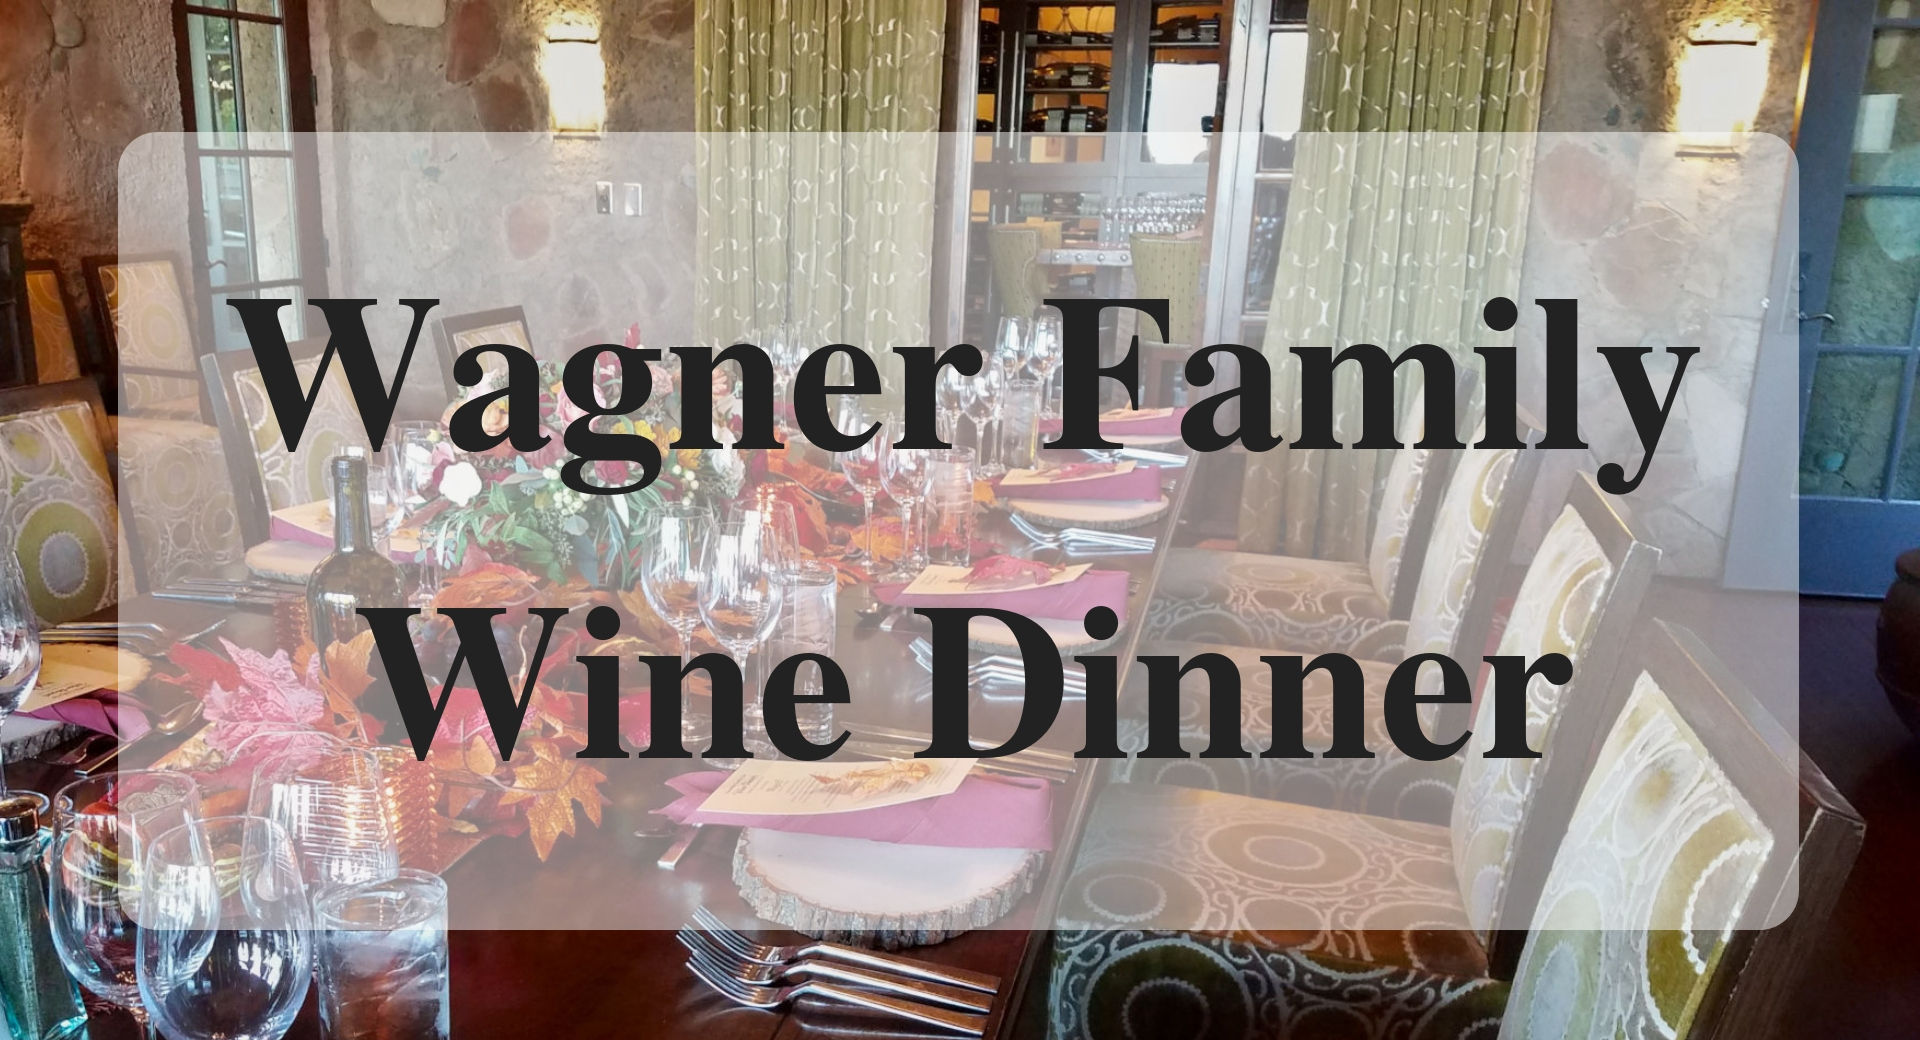 Wagner Family Wine Dinner main